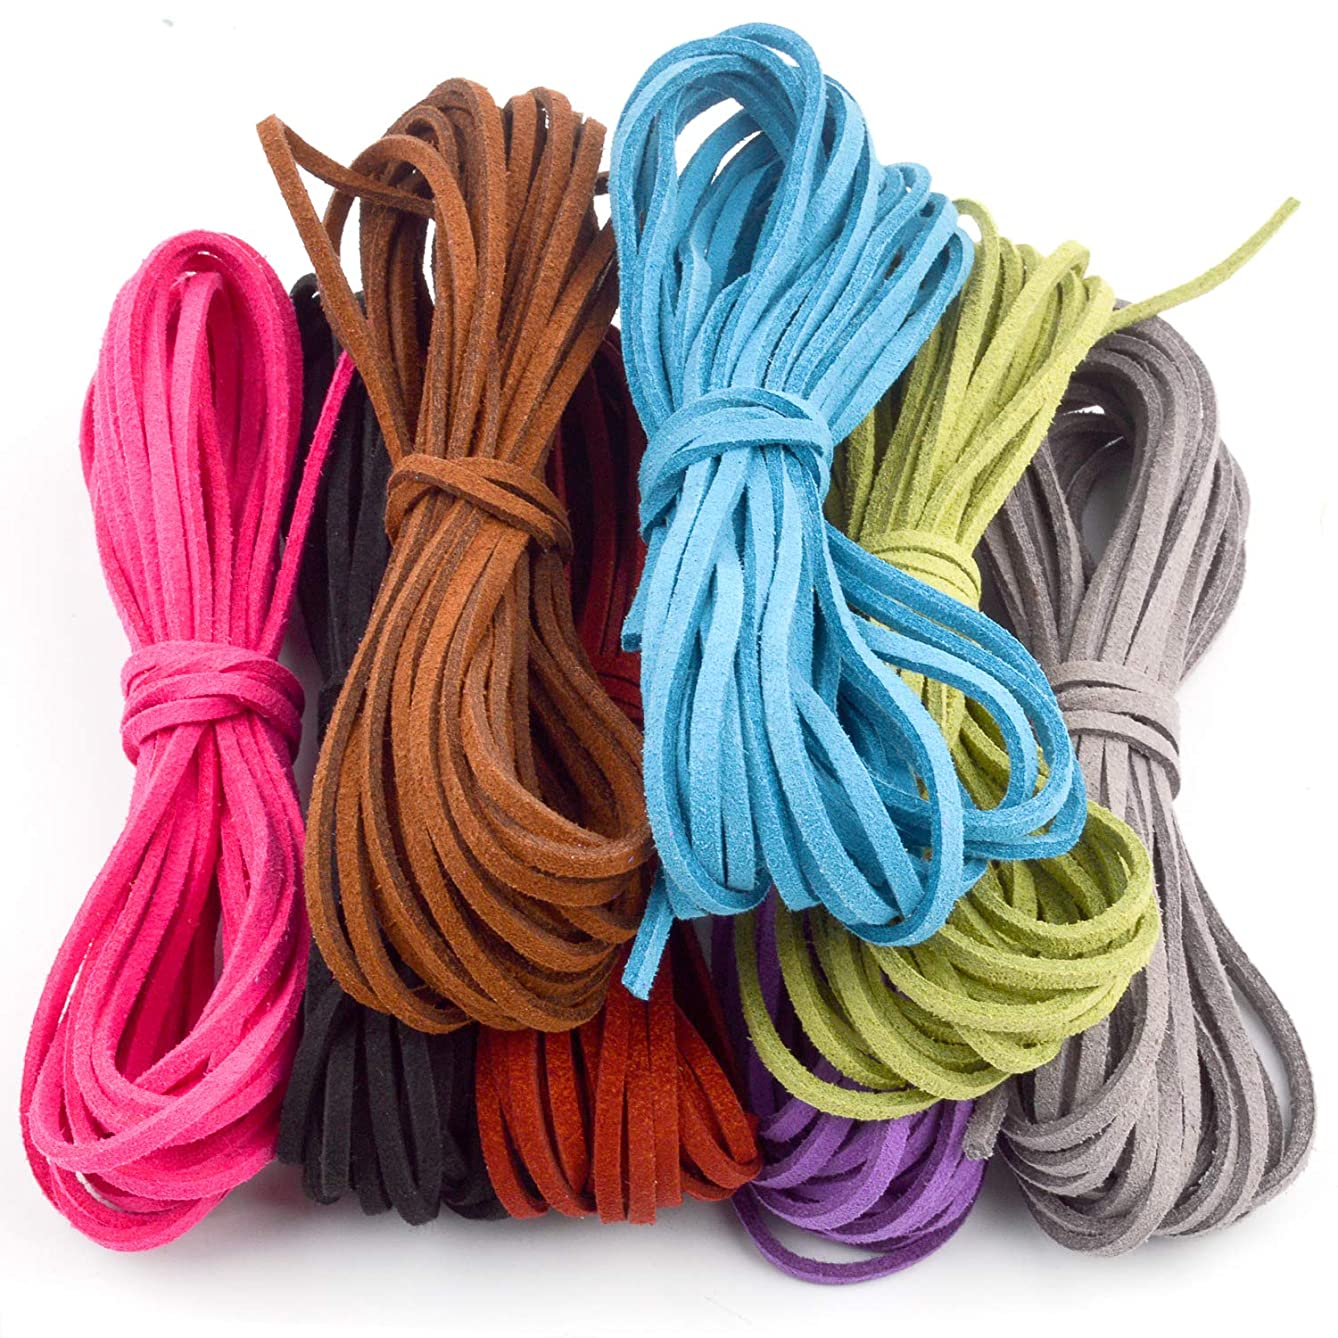 Jdesun 3mm x 5m Leather Cord Suede String for Bracelet Necklace Beading Jewelry DIY Handmade Crafts, 8 Pieces, 8 Colors